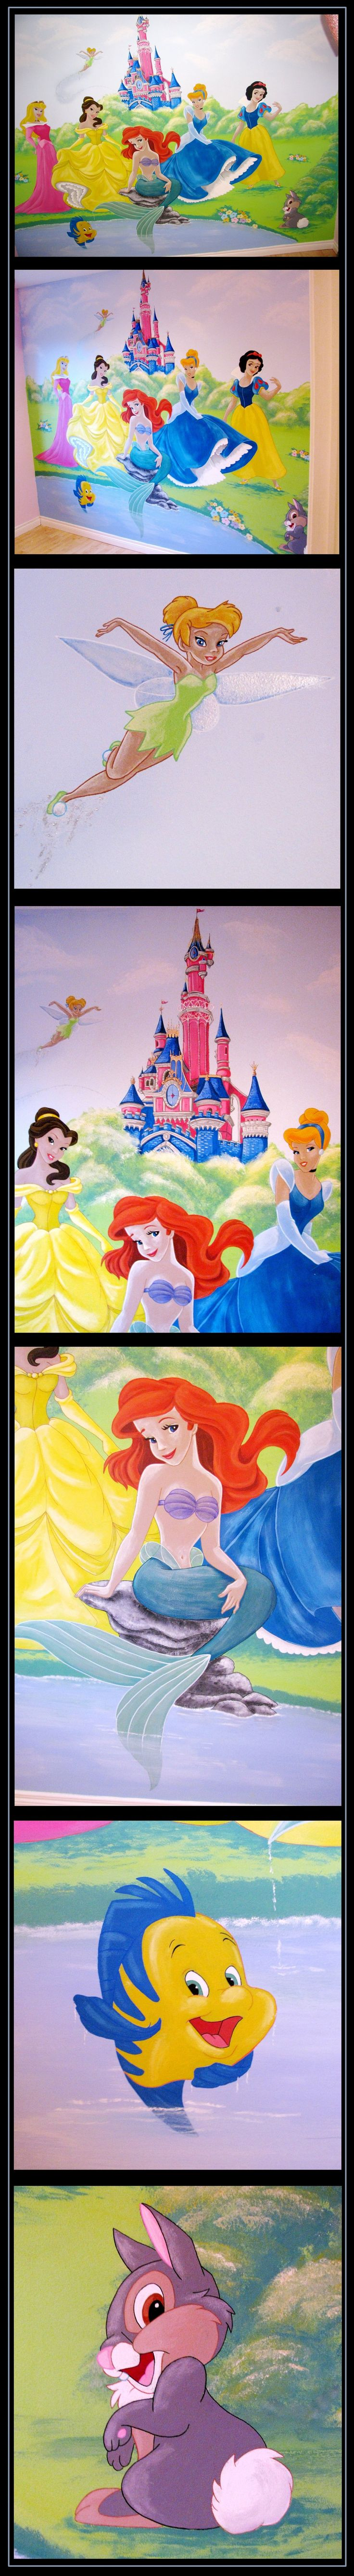 25 best ideas about princess mural on pinterest castle for Disney princess ballroom mural